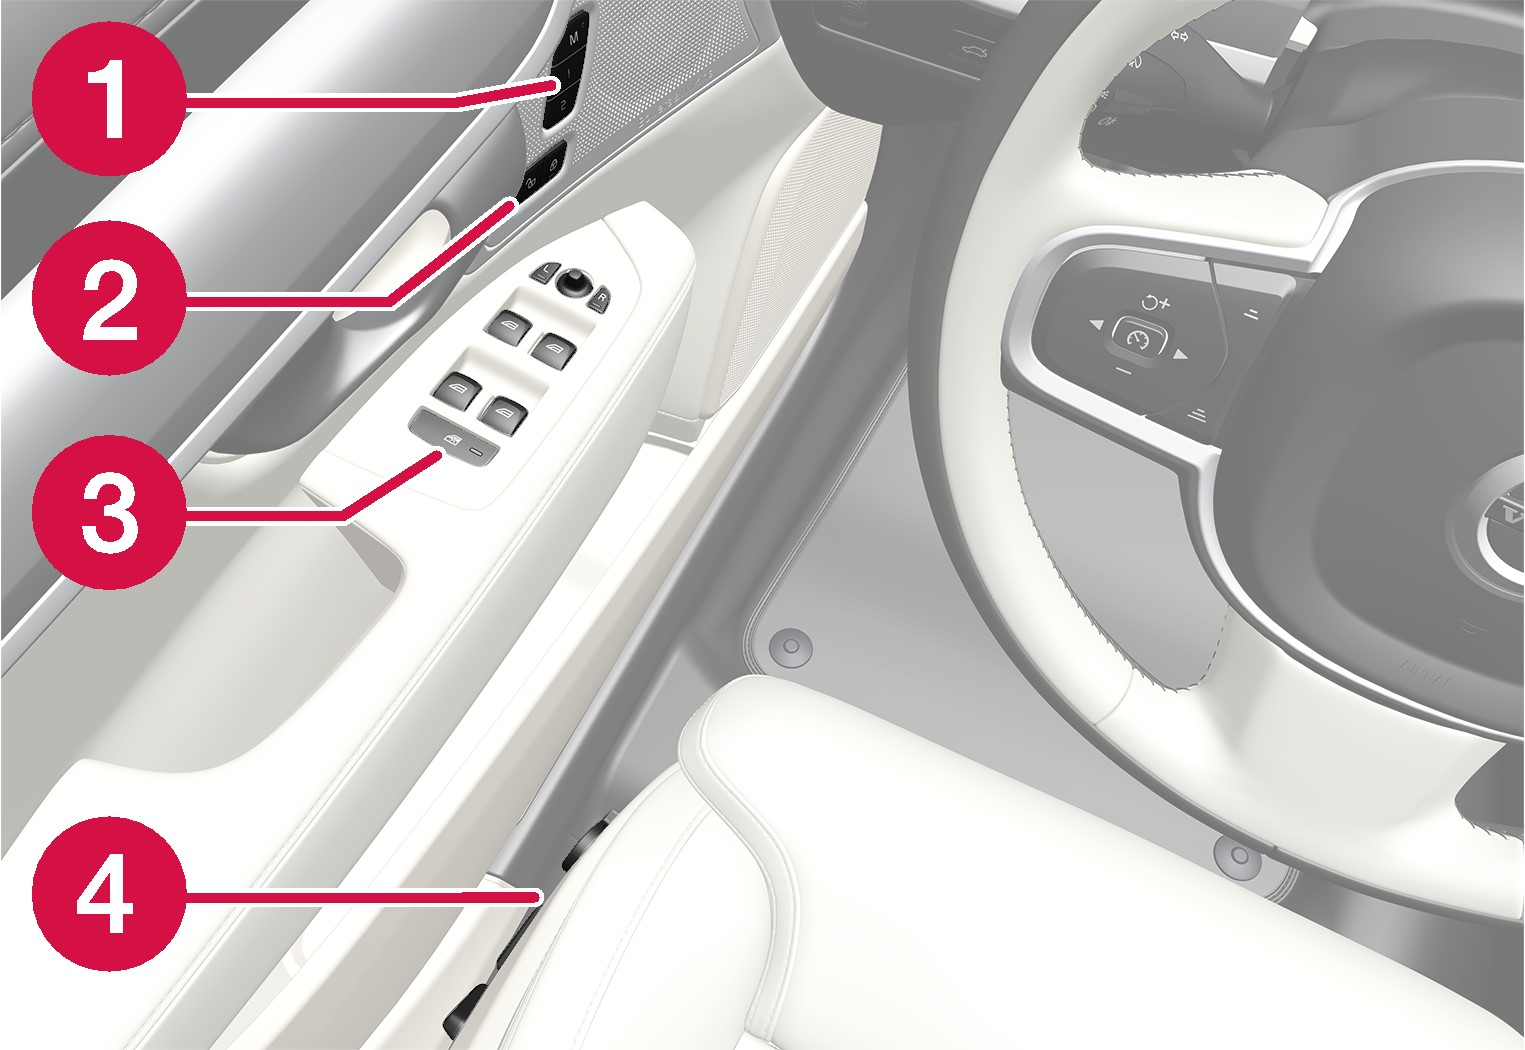 16w17 - SPA - Instruments and controls 4 LHD